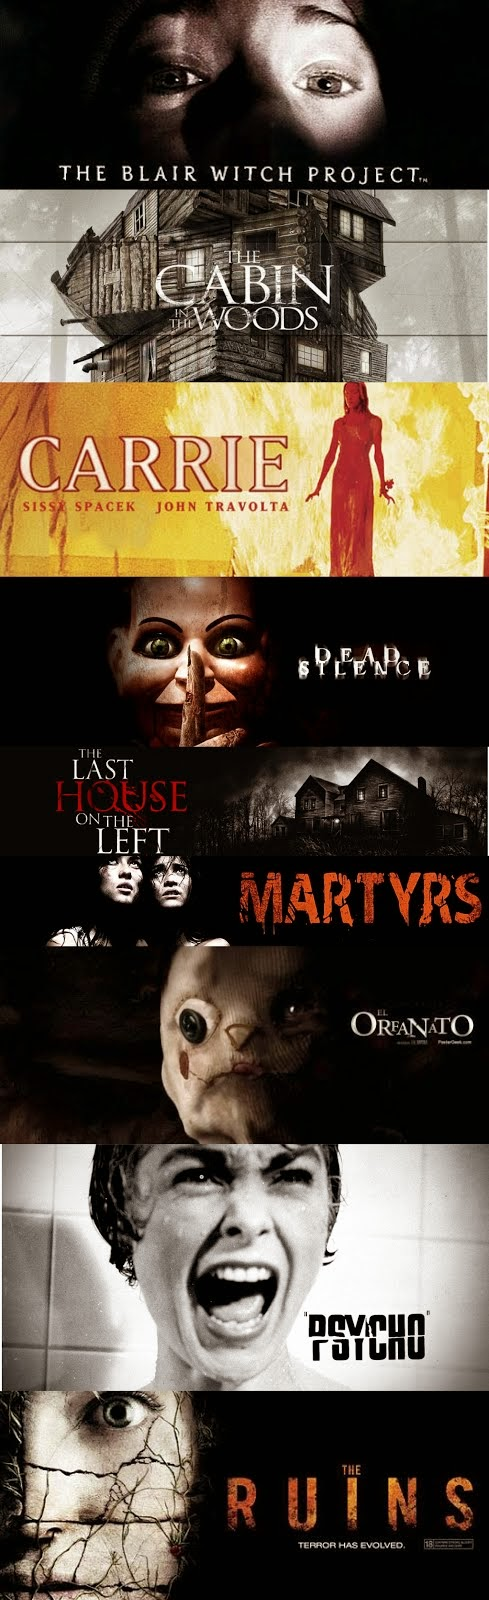 Some of my favorite horror movies!